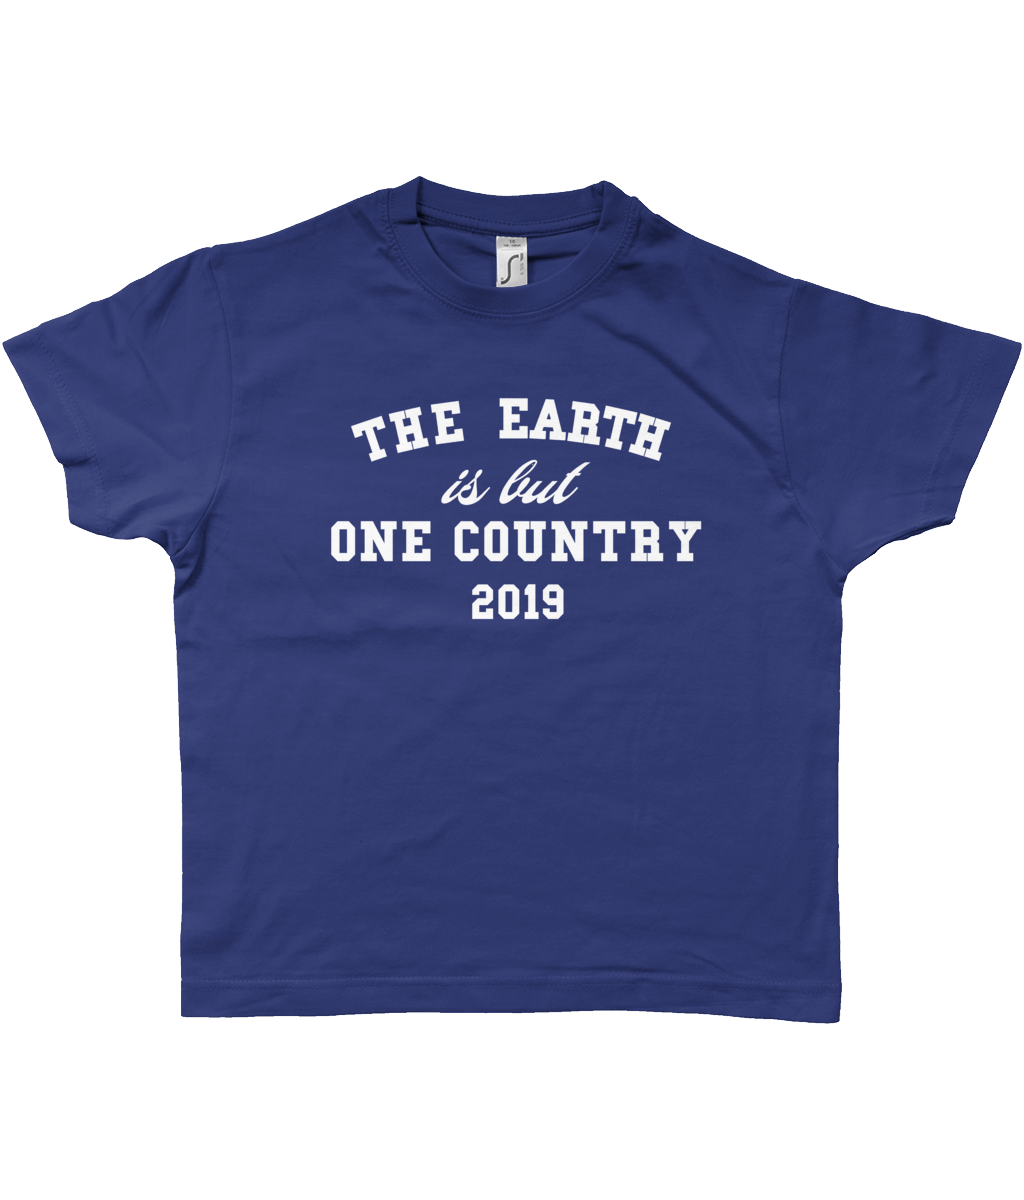 Bojest kid's retro 'Earth is but one country' blue unity t-shirt